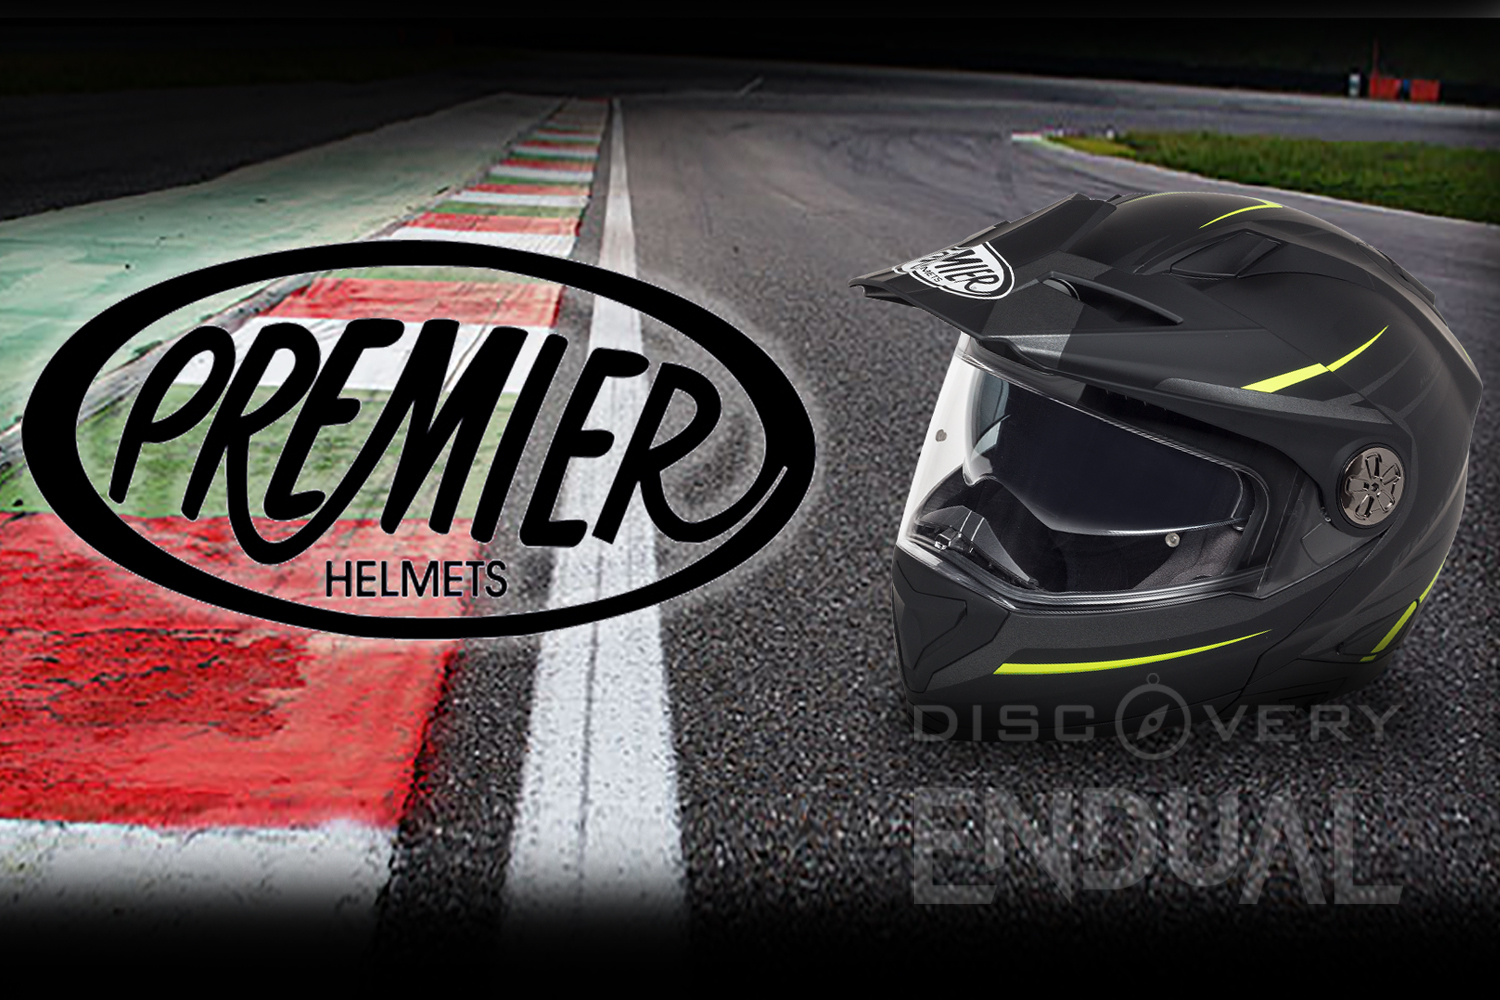 79a7913e Premier helmets is glad to show its 2018 collection